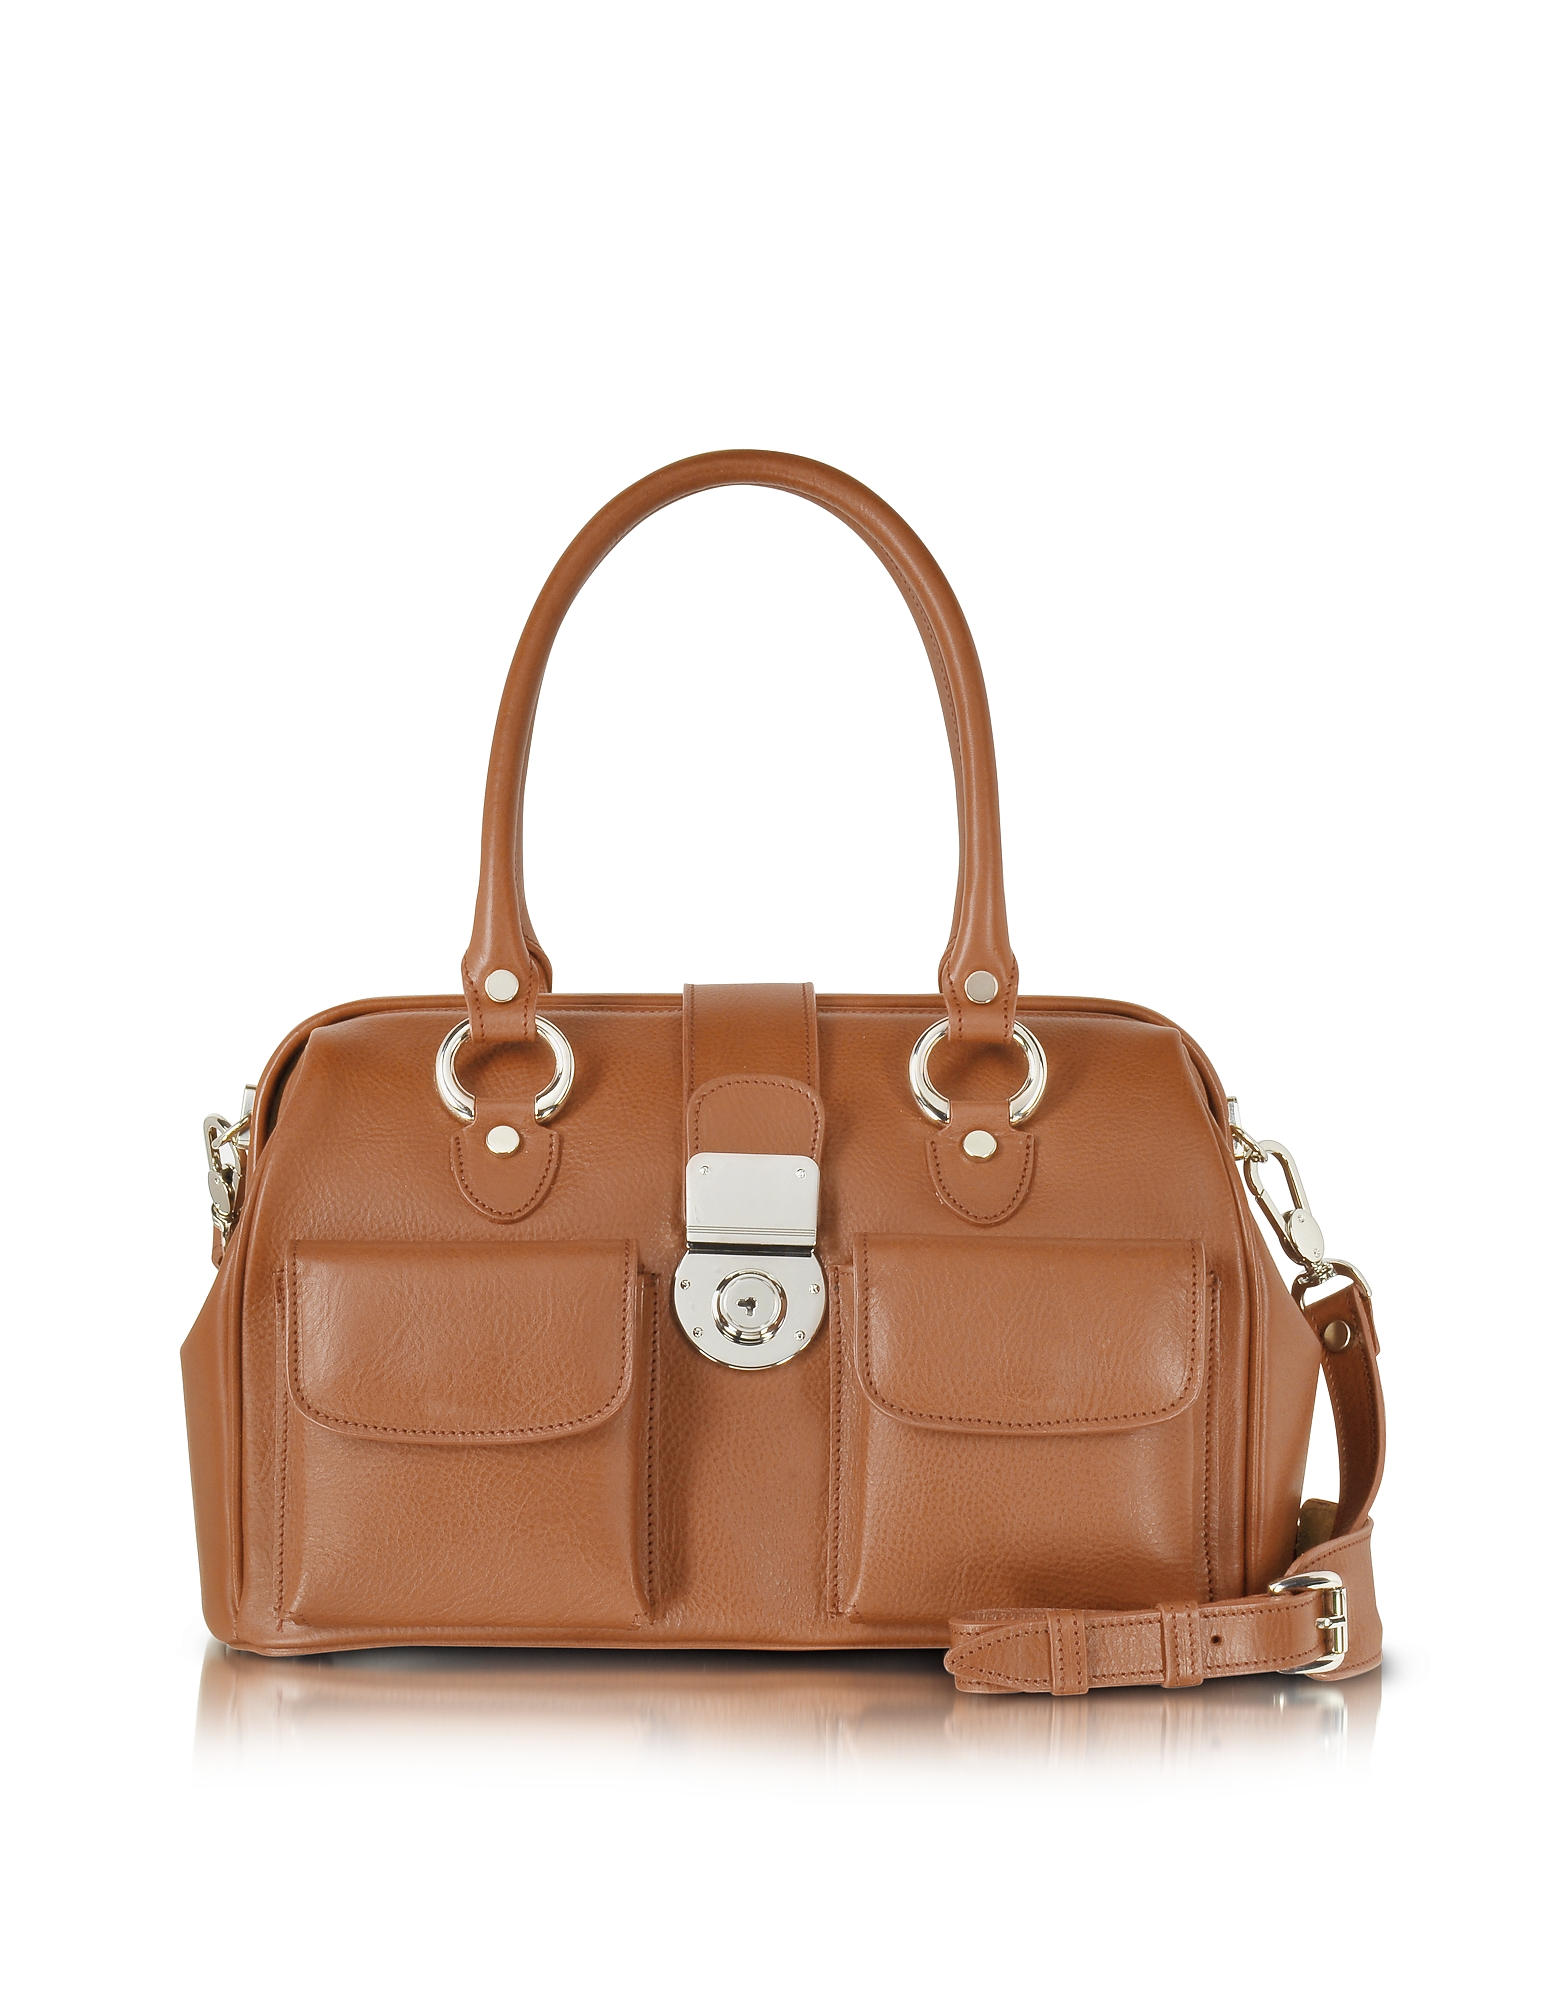 Image of L.A.P.A. Designer Handbags, Front Pocket Calf Leather Doctor-style Handbag